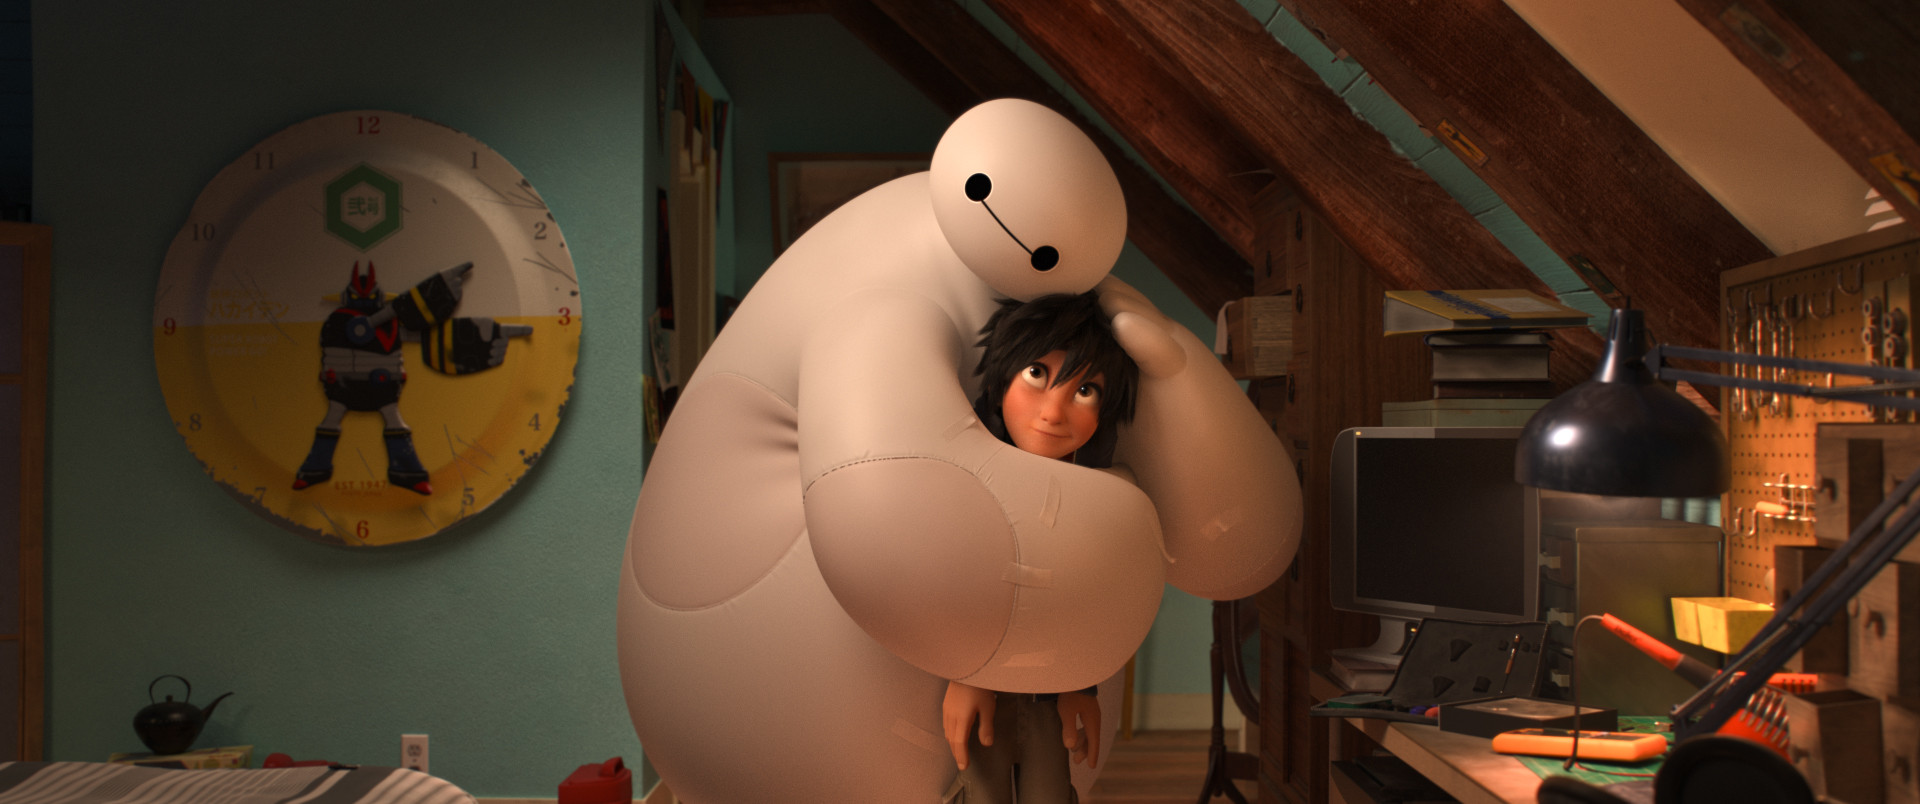 Big Hero 6-Official Poster Banner PROMO-08SETEMBRO2014-01